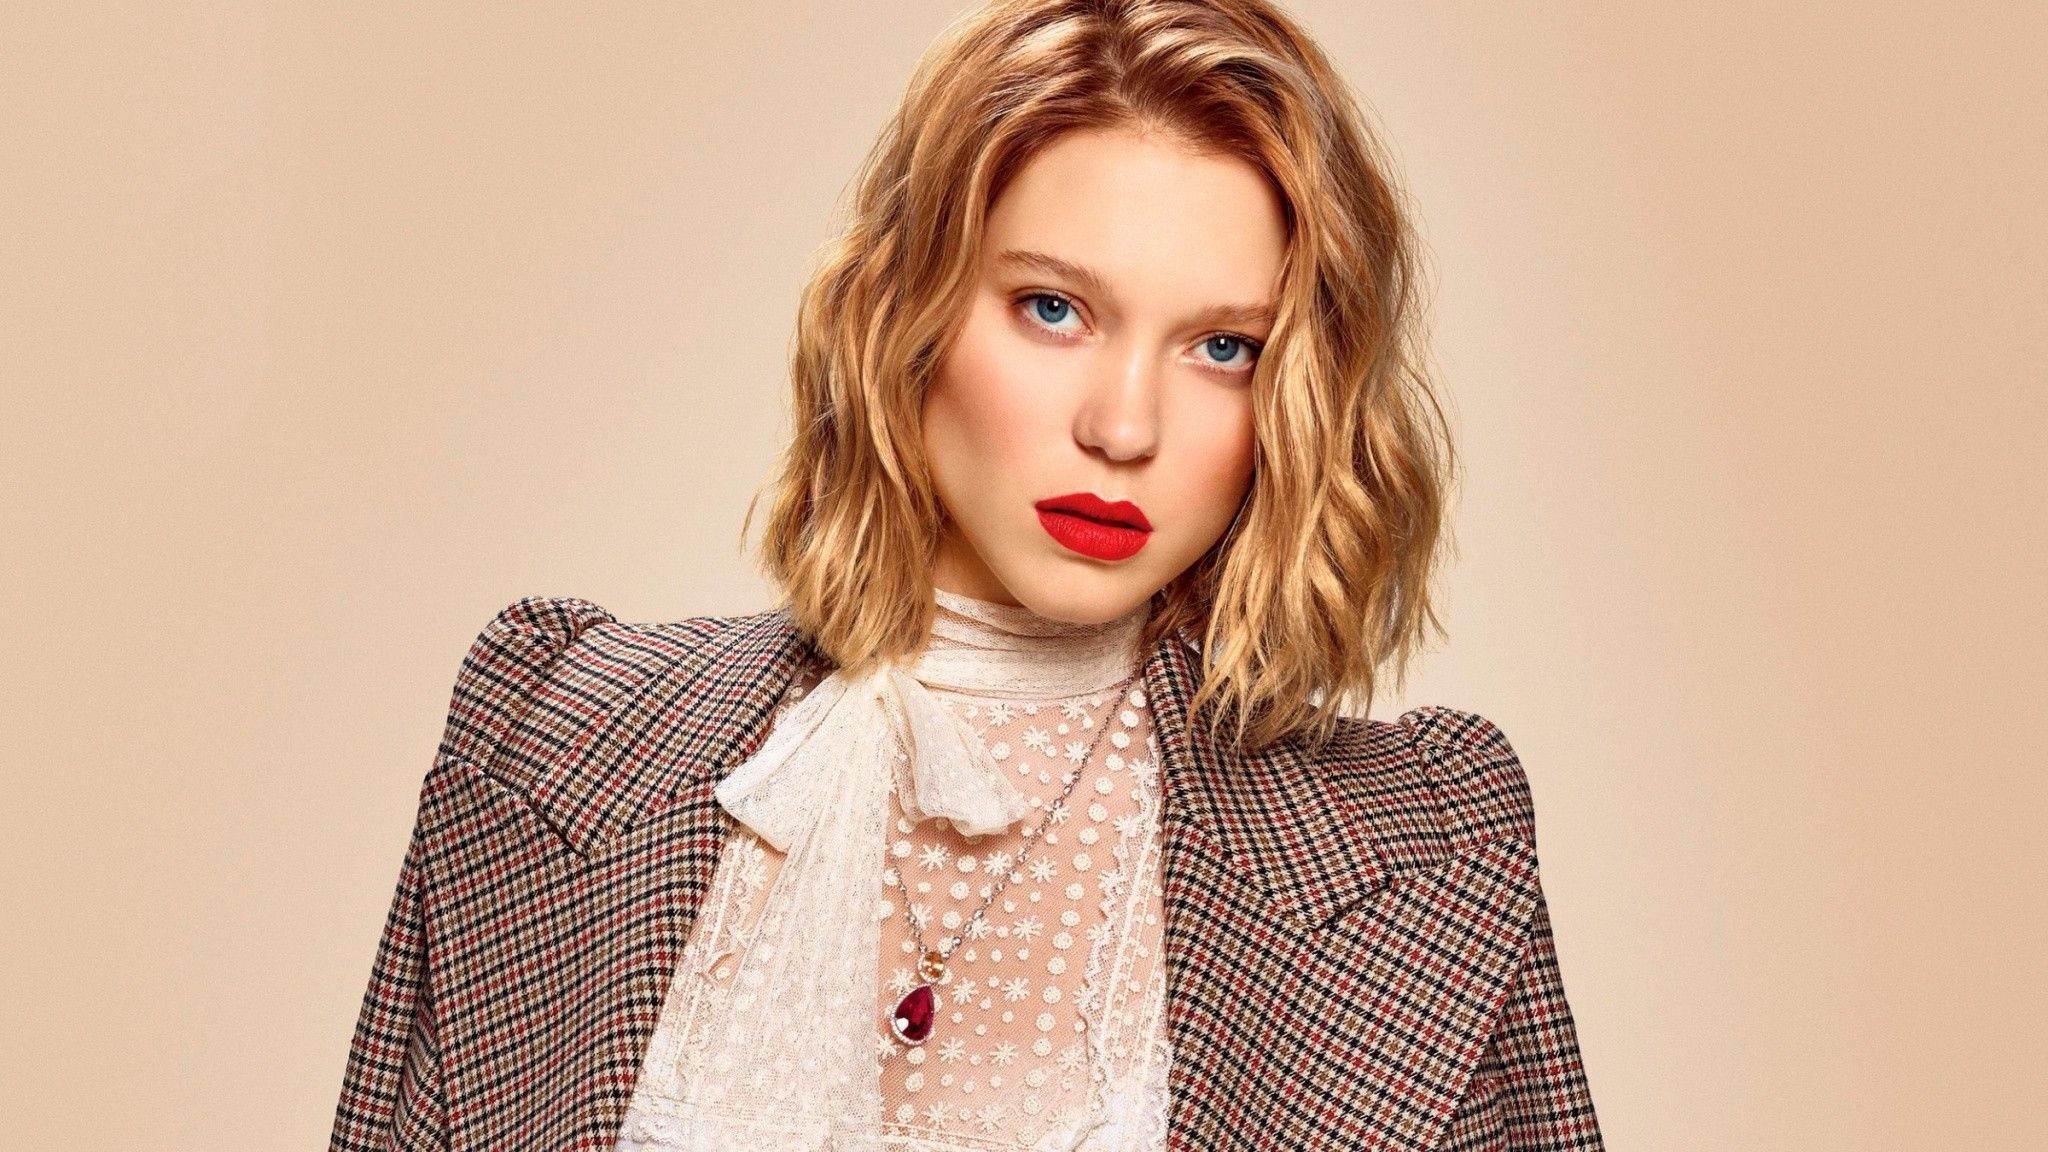 Lea Seydoux Wallpapers And Backgrounds